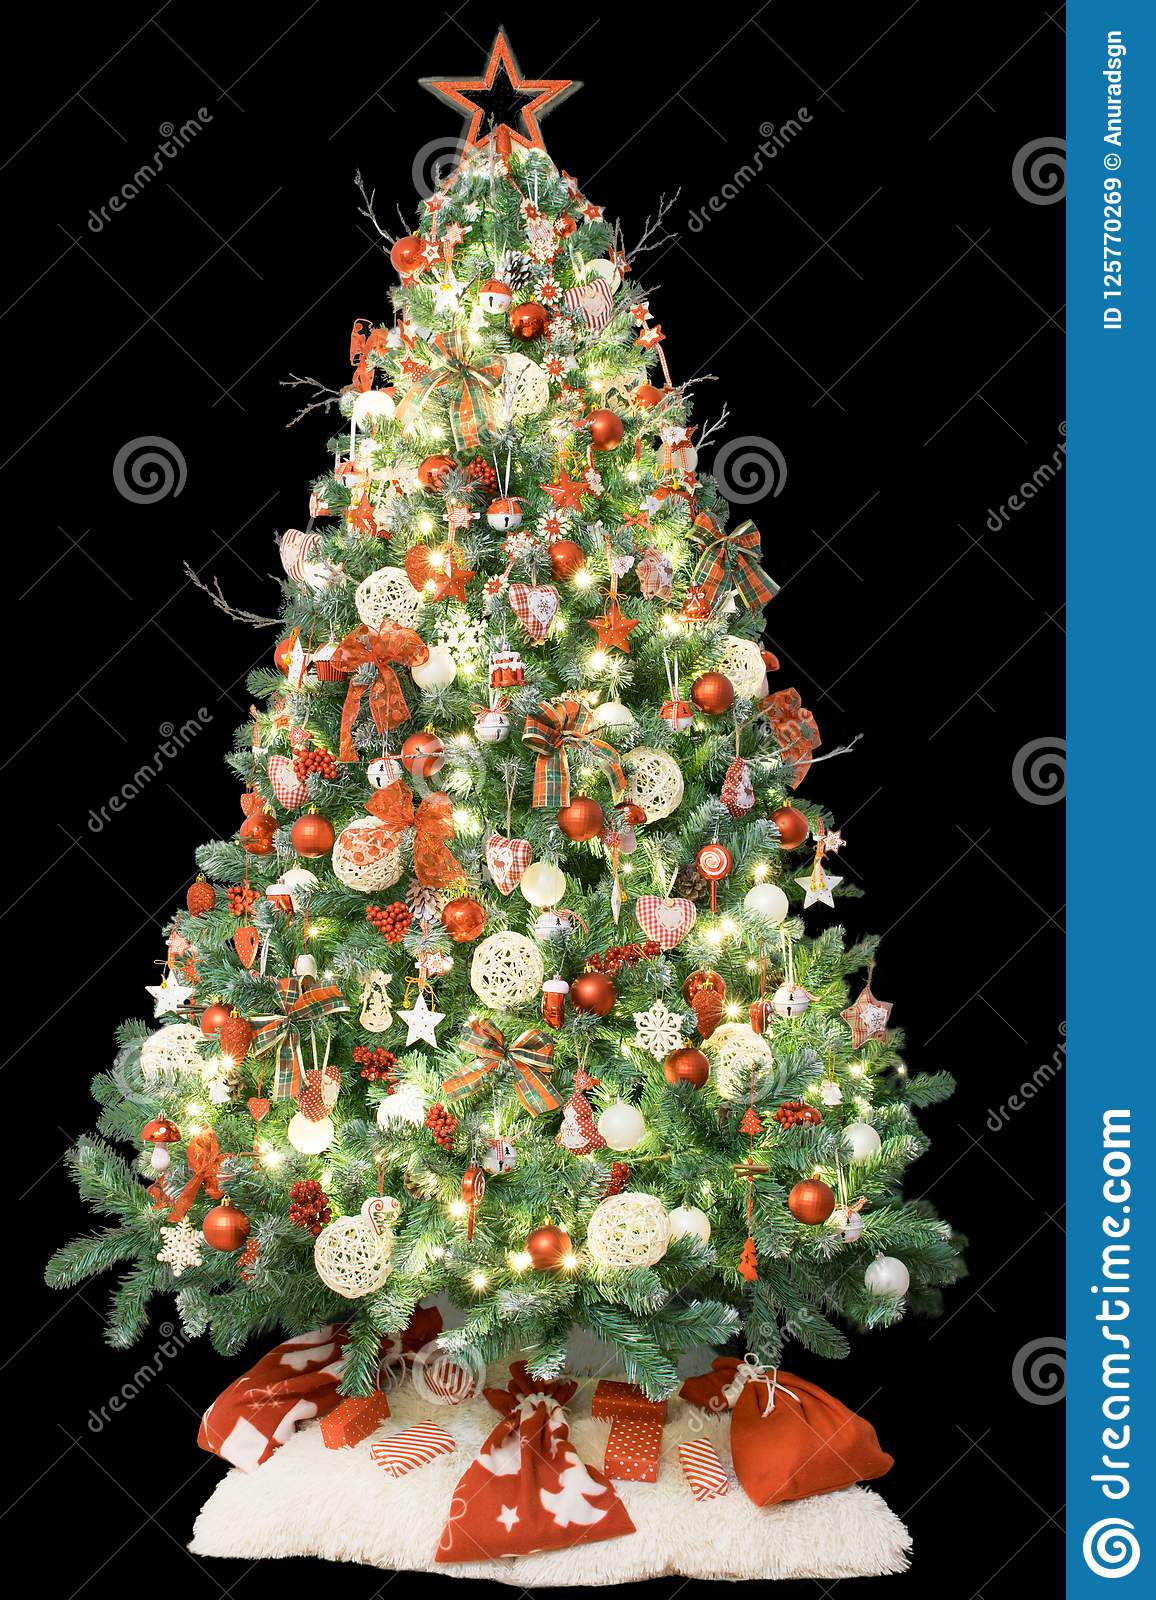 download modern christmas tree decorated with vintage ornaments lights and red white gifts